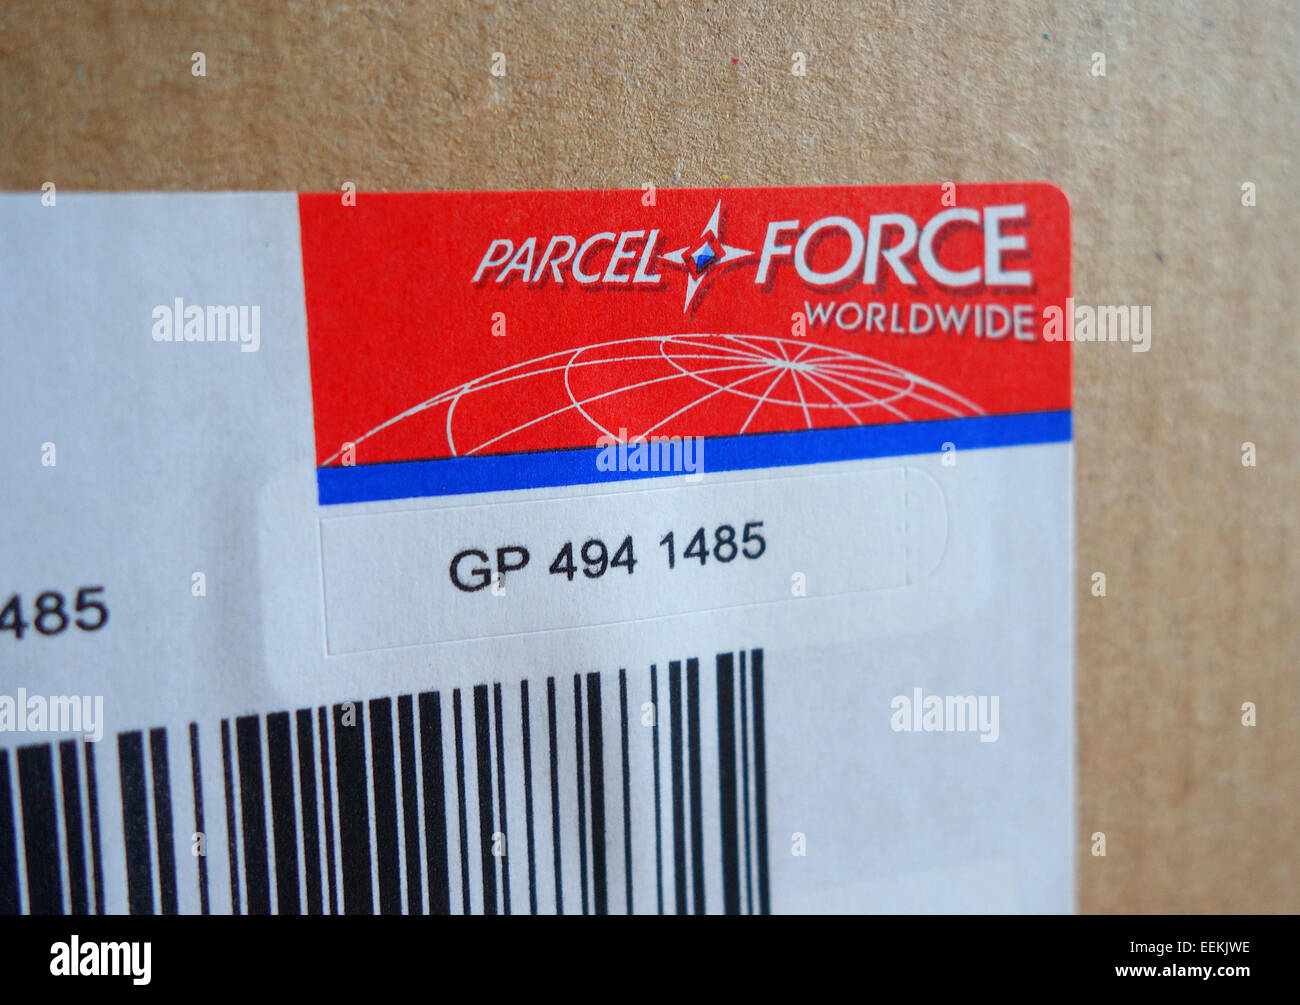 A Parcel Force bar code on package - Stock Image